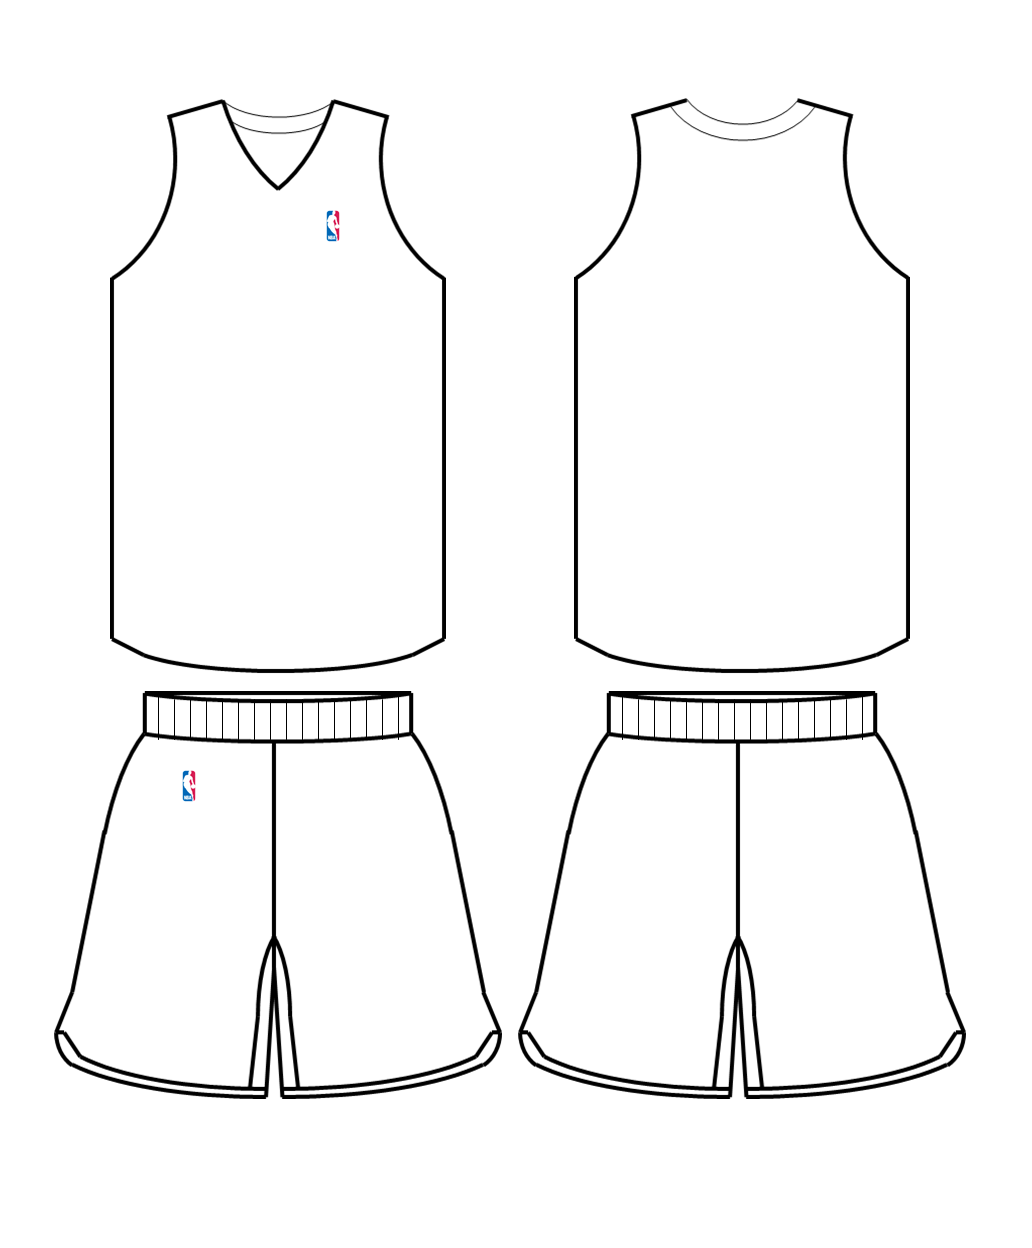 Blank Football Jersey Coloring Page